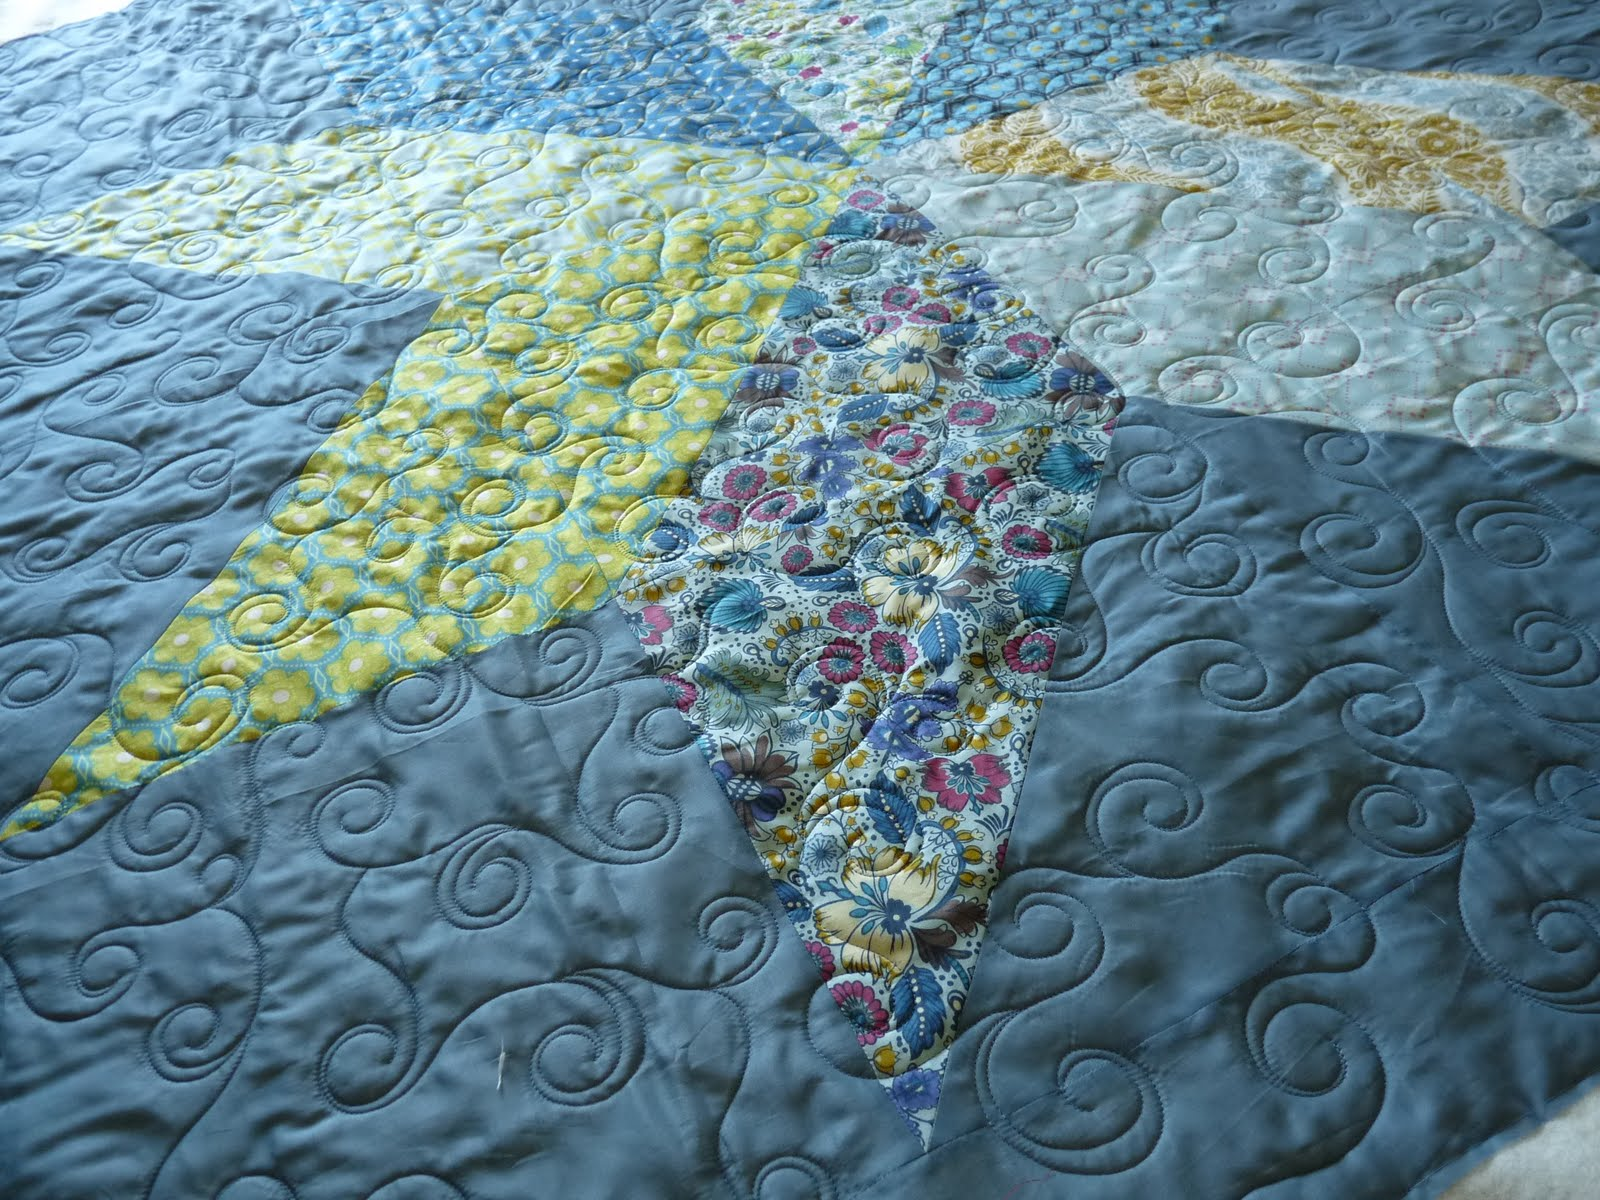 Sewing & Quilt Gallery: June 2010